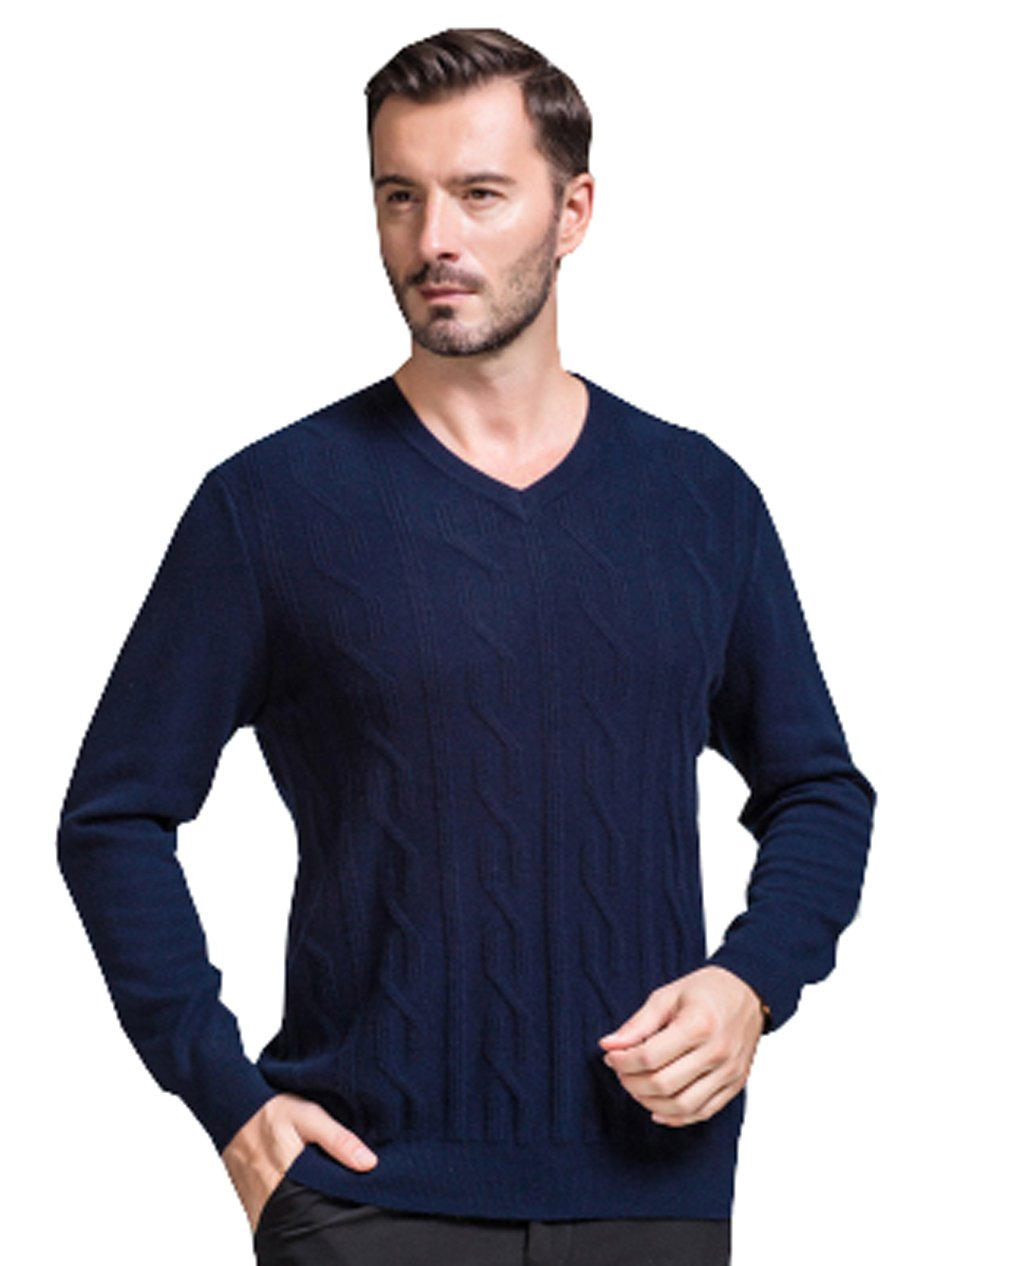 METERDE Men's Classic Cashmere Twist Knit Sweater in V Neck Deep Blue M